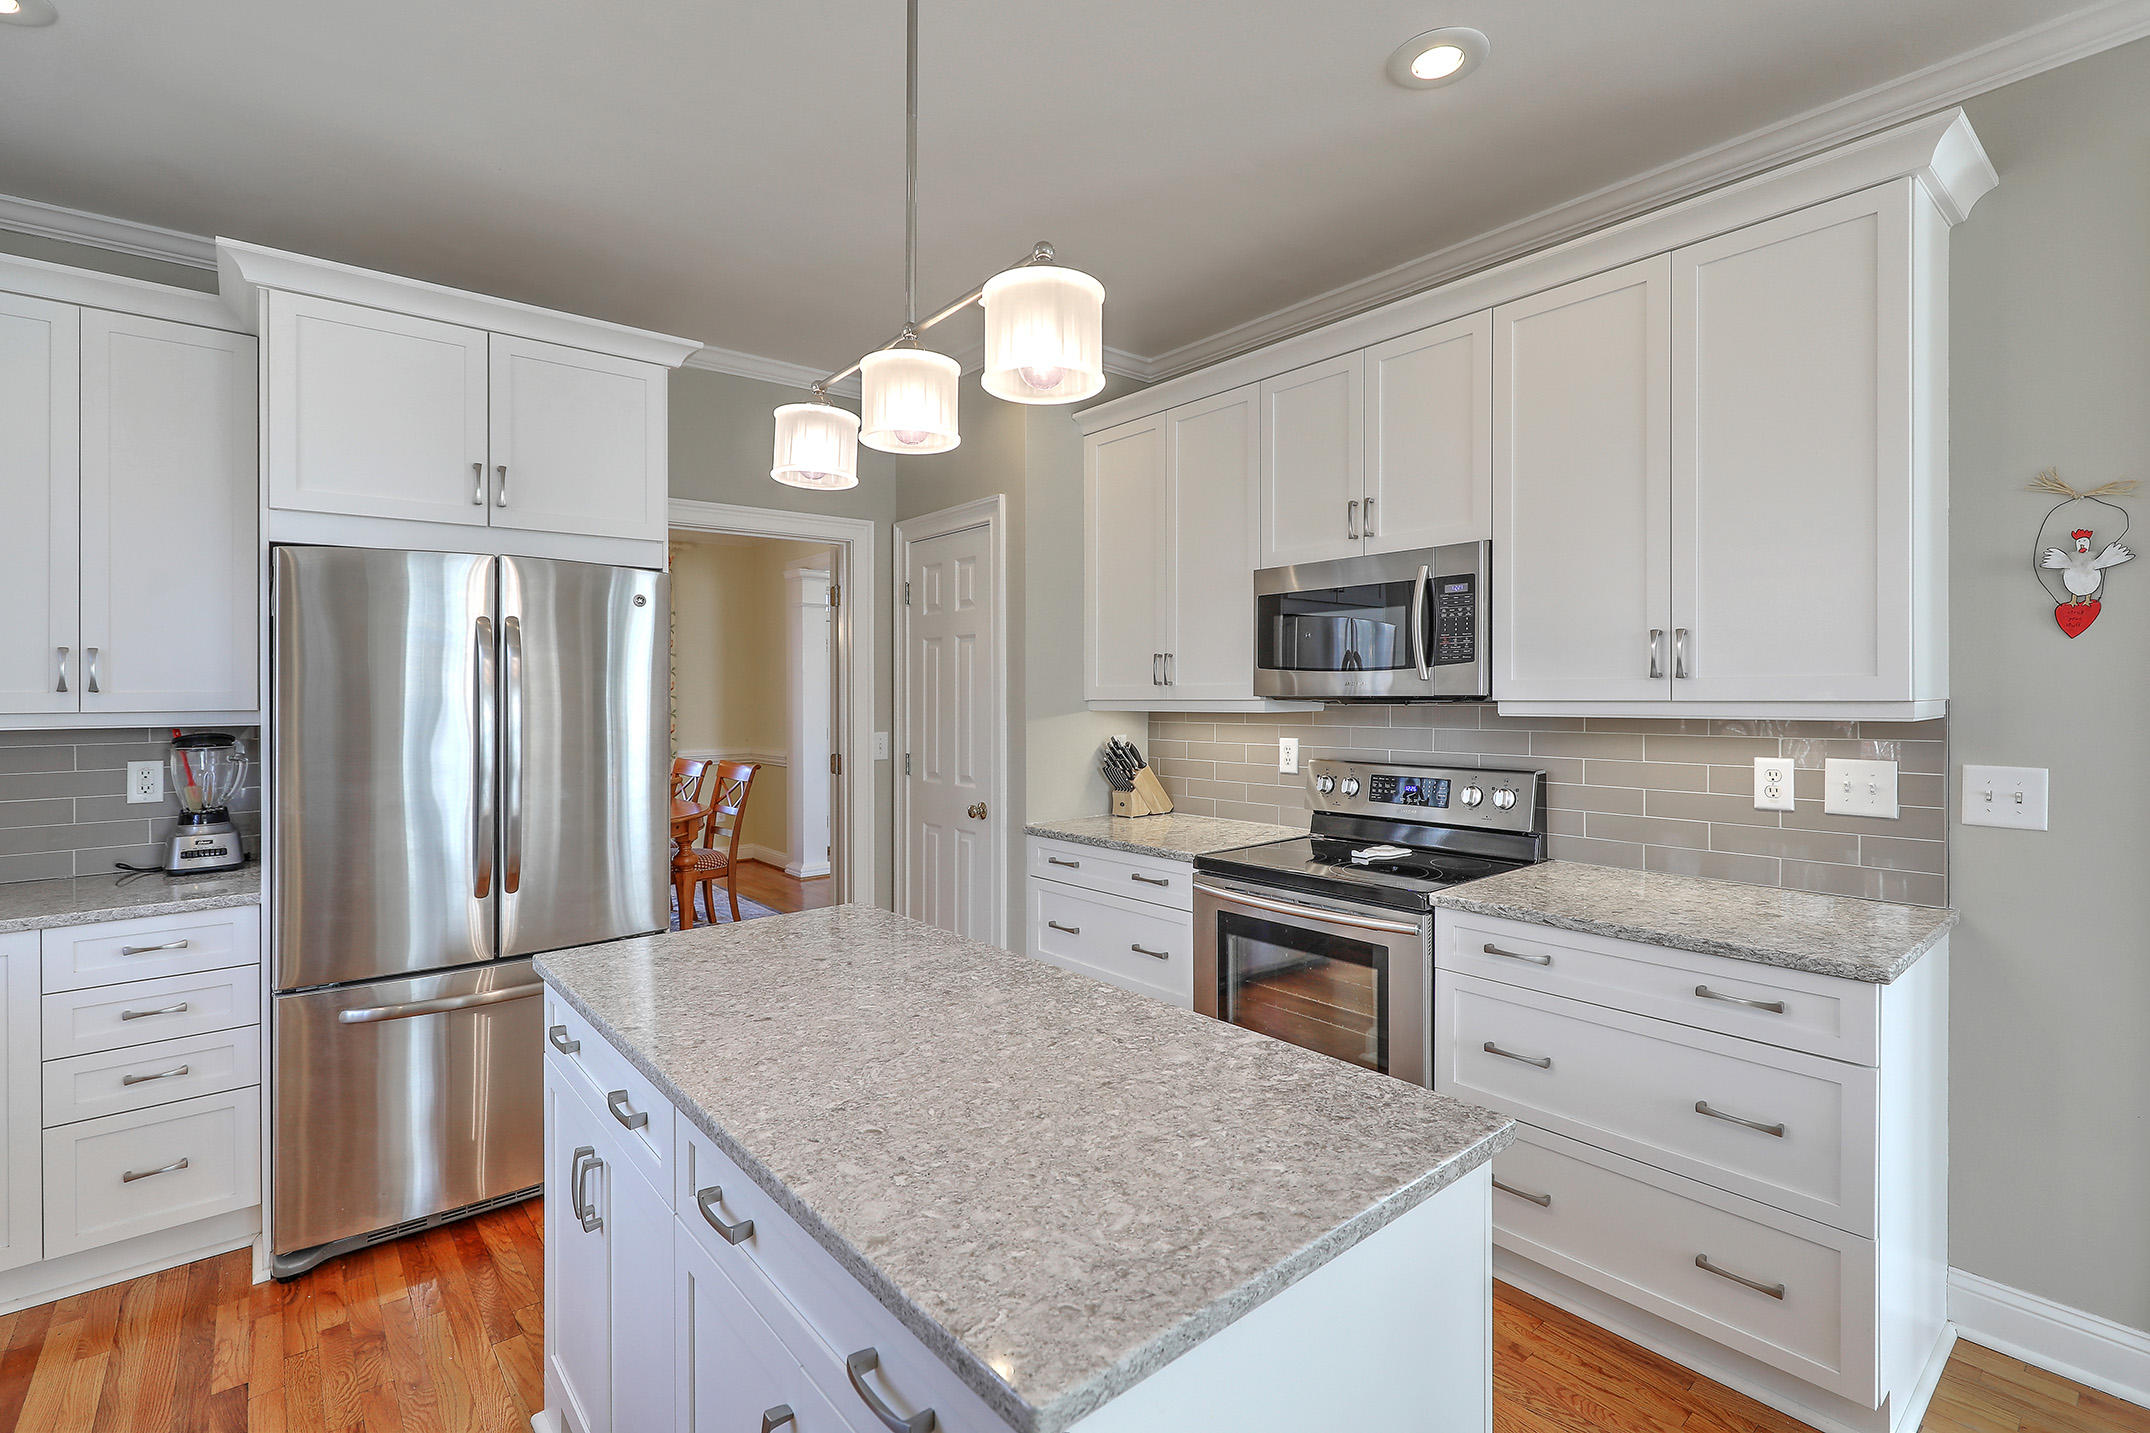 Home for sale 645 White Chapel Circle, Woodward Pointe, James Island, SC